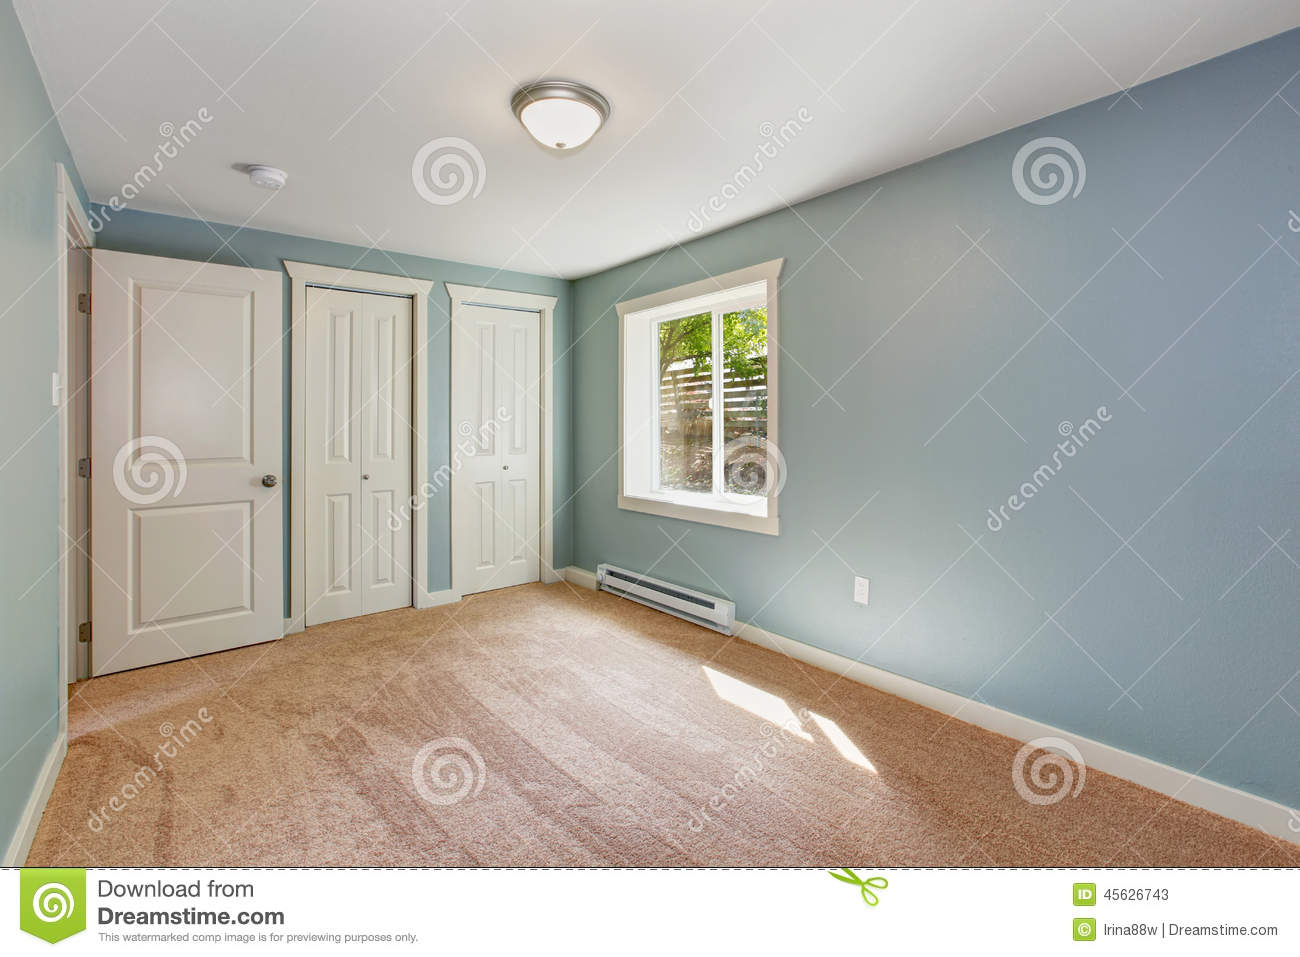 Light Blue Bedroom With Closets Stock Image Image Of Residential